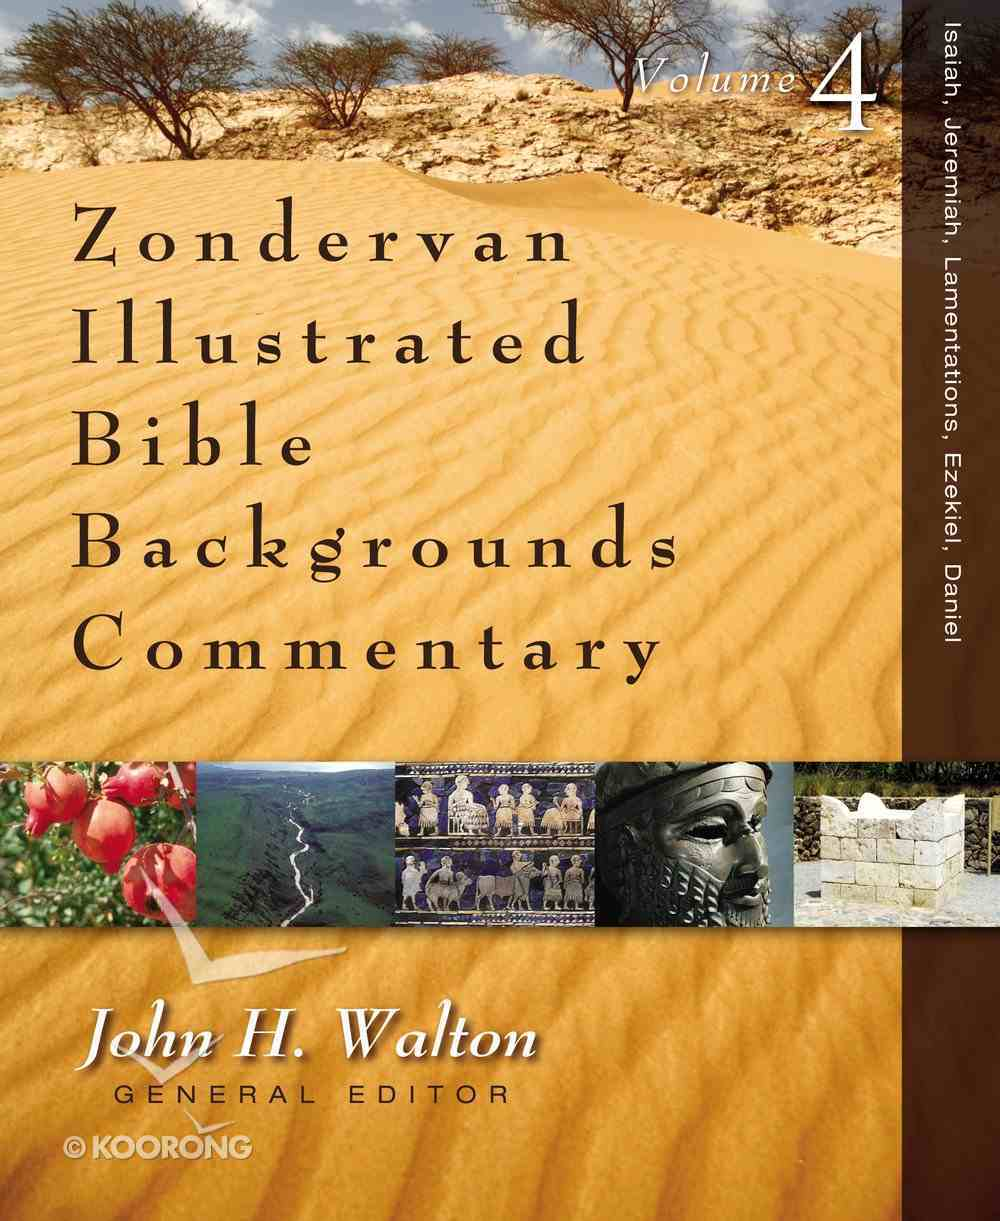 Isaiah (Zondervan Illustrated Bible Backgrounds Commentary Series) eBook